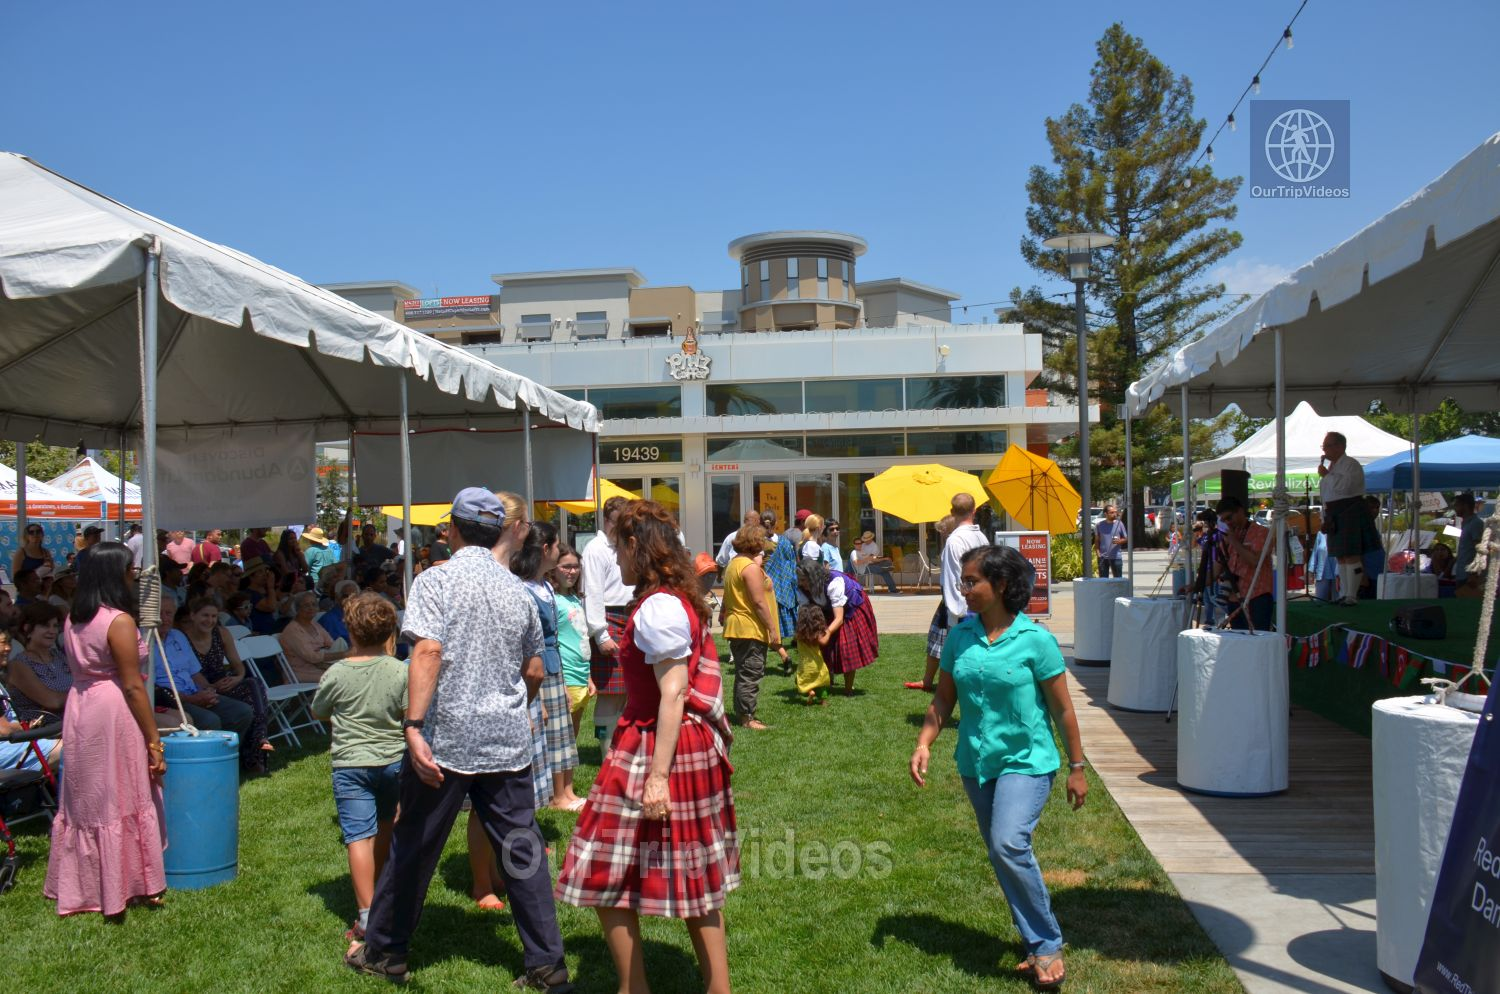 Carnival of Cultures, Cupertino, CA, USA - Picture 23 of 25